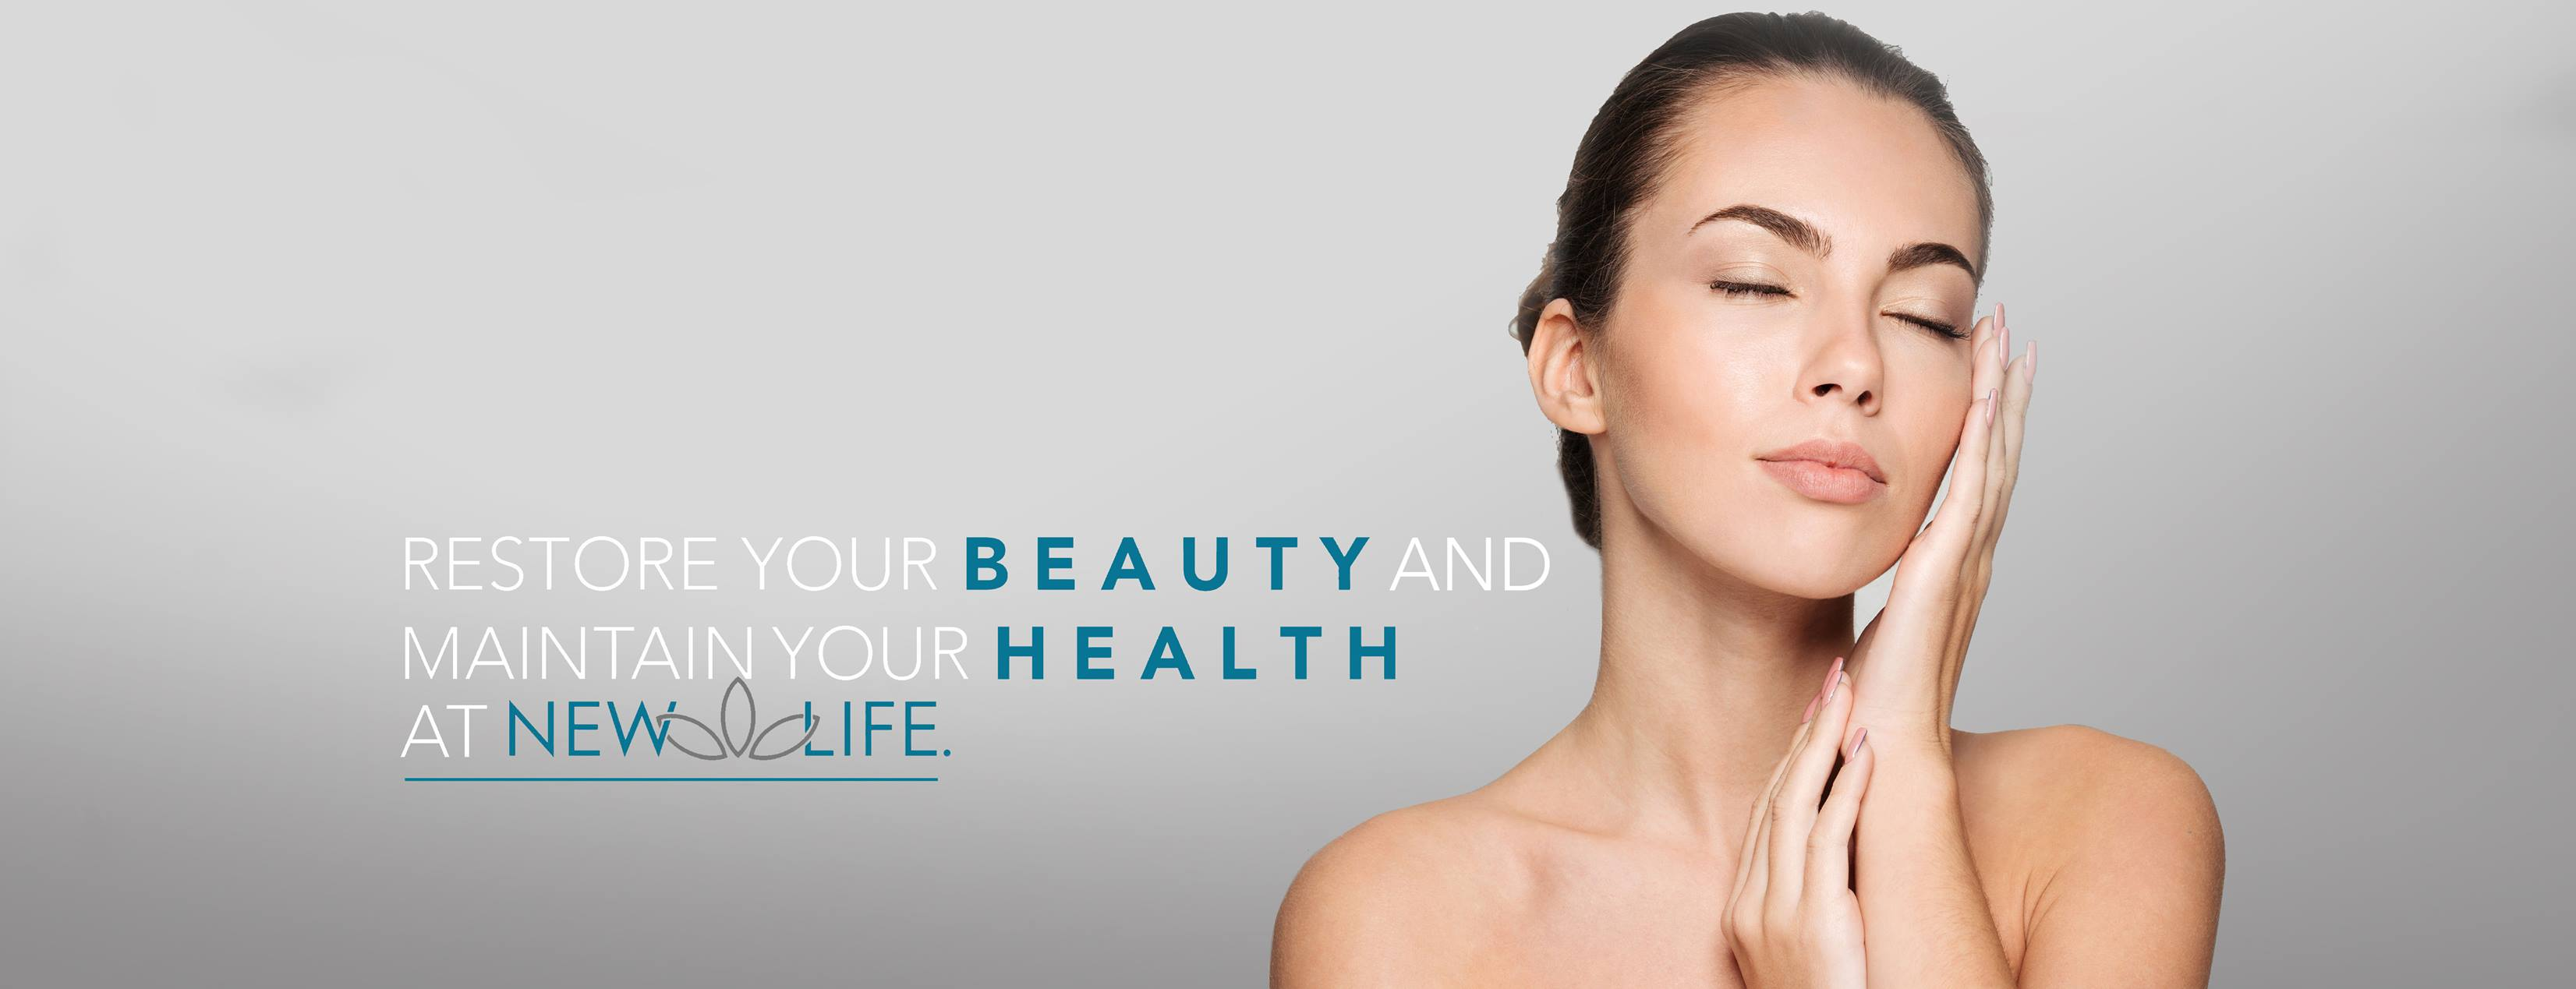 New Life Cosmetic Surgery and Wellness Center reviews   Cosmetic Surgeons at 244 Lindberg Ave - McAllen TX